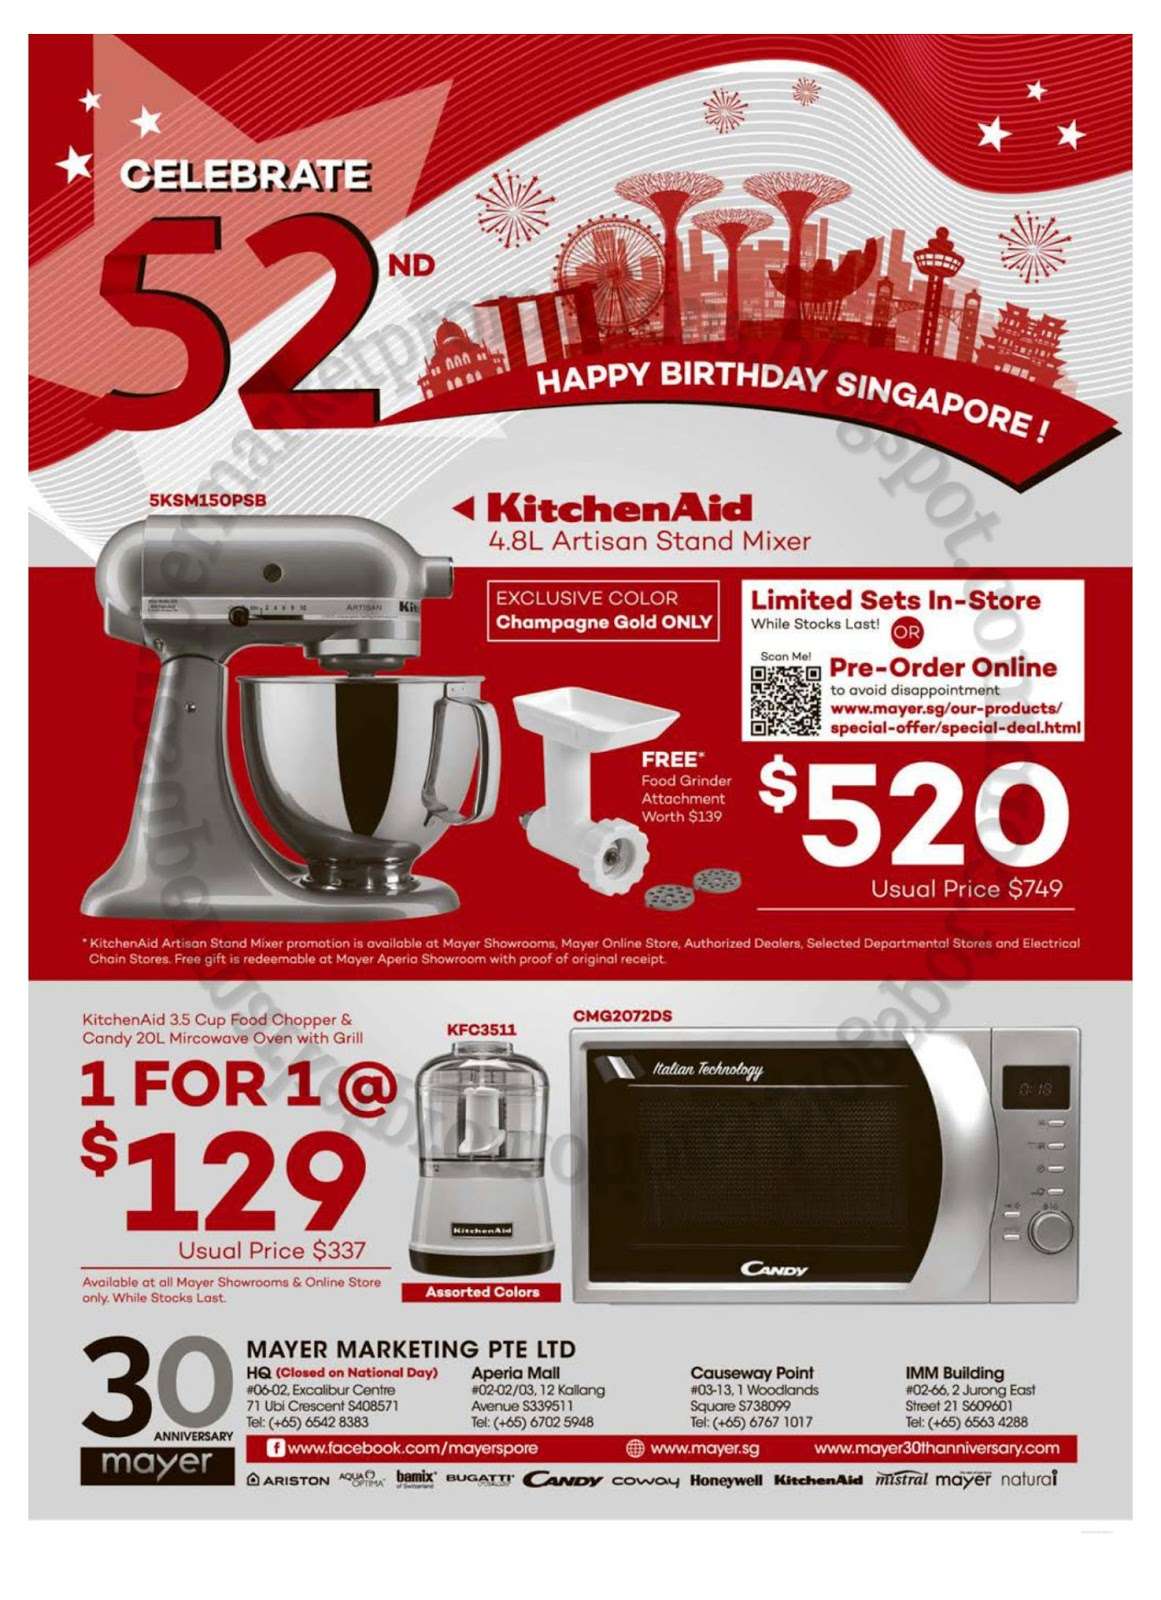 Ordinaire Mayer KitchenAid Promotion 08 August 2017